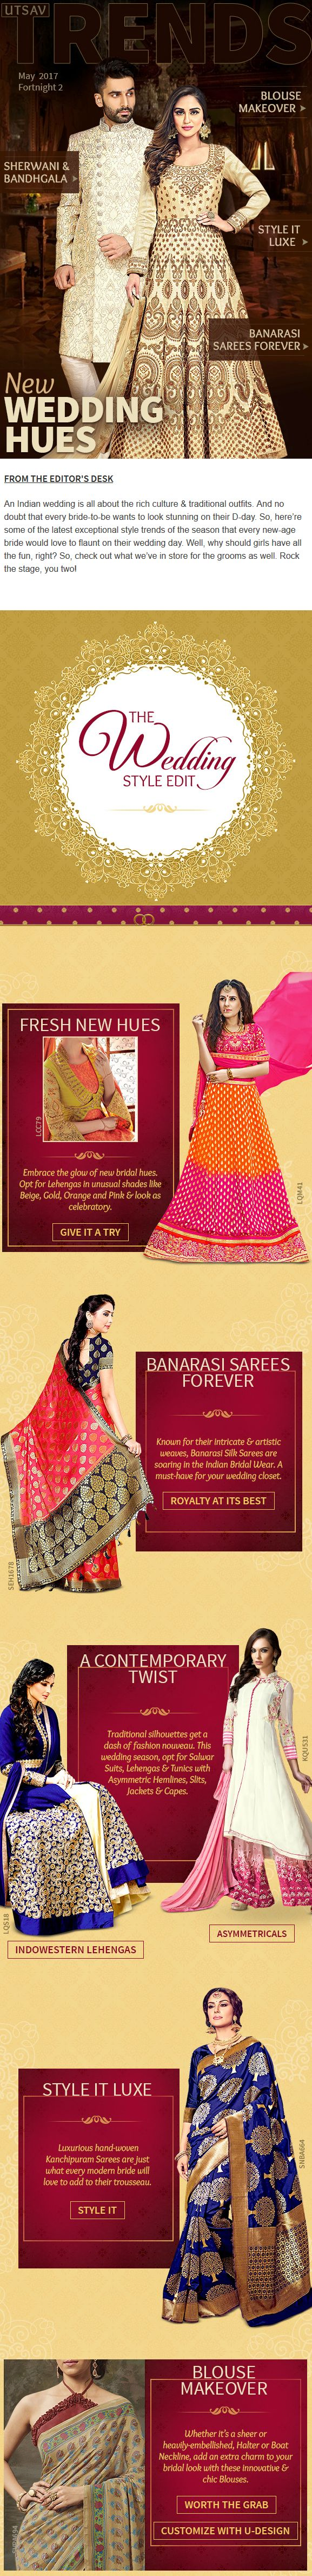 An Indian wedding is all about the rich culture & traditional outfits. And no doubt that every bride-to-be wants to look stunning on their D-day. So, here're some of the latest exceptional style trends of the season that every new-age bride would love to flaunt on their wedding day. Well, why should girls have all the fun, right? So, check out what we've in store for the grooms as well. Rock the stage, you two!